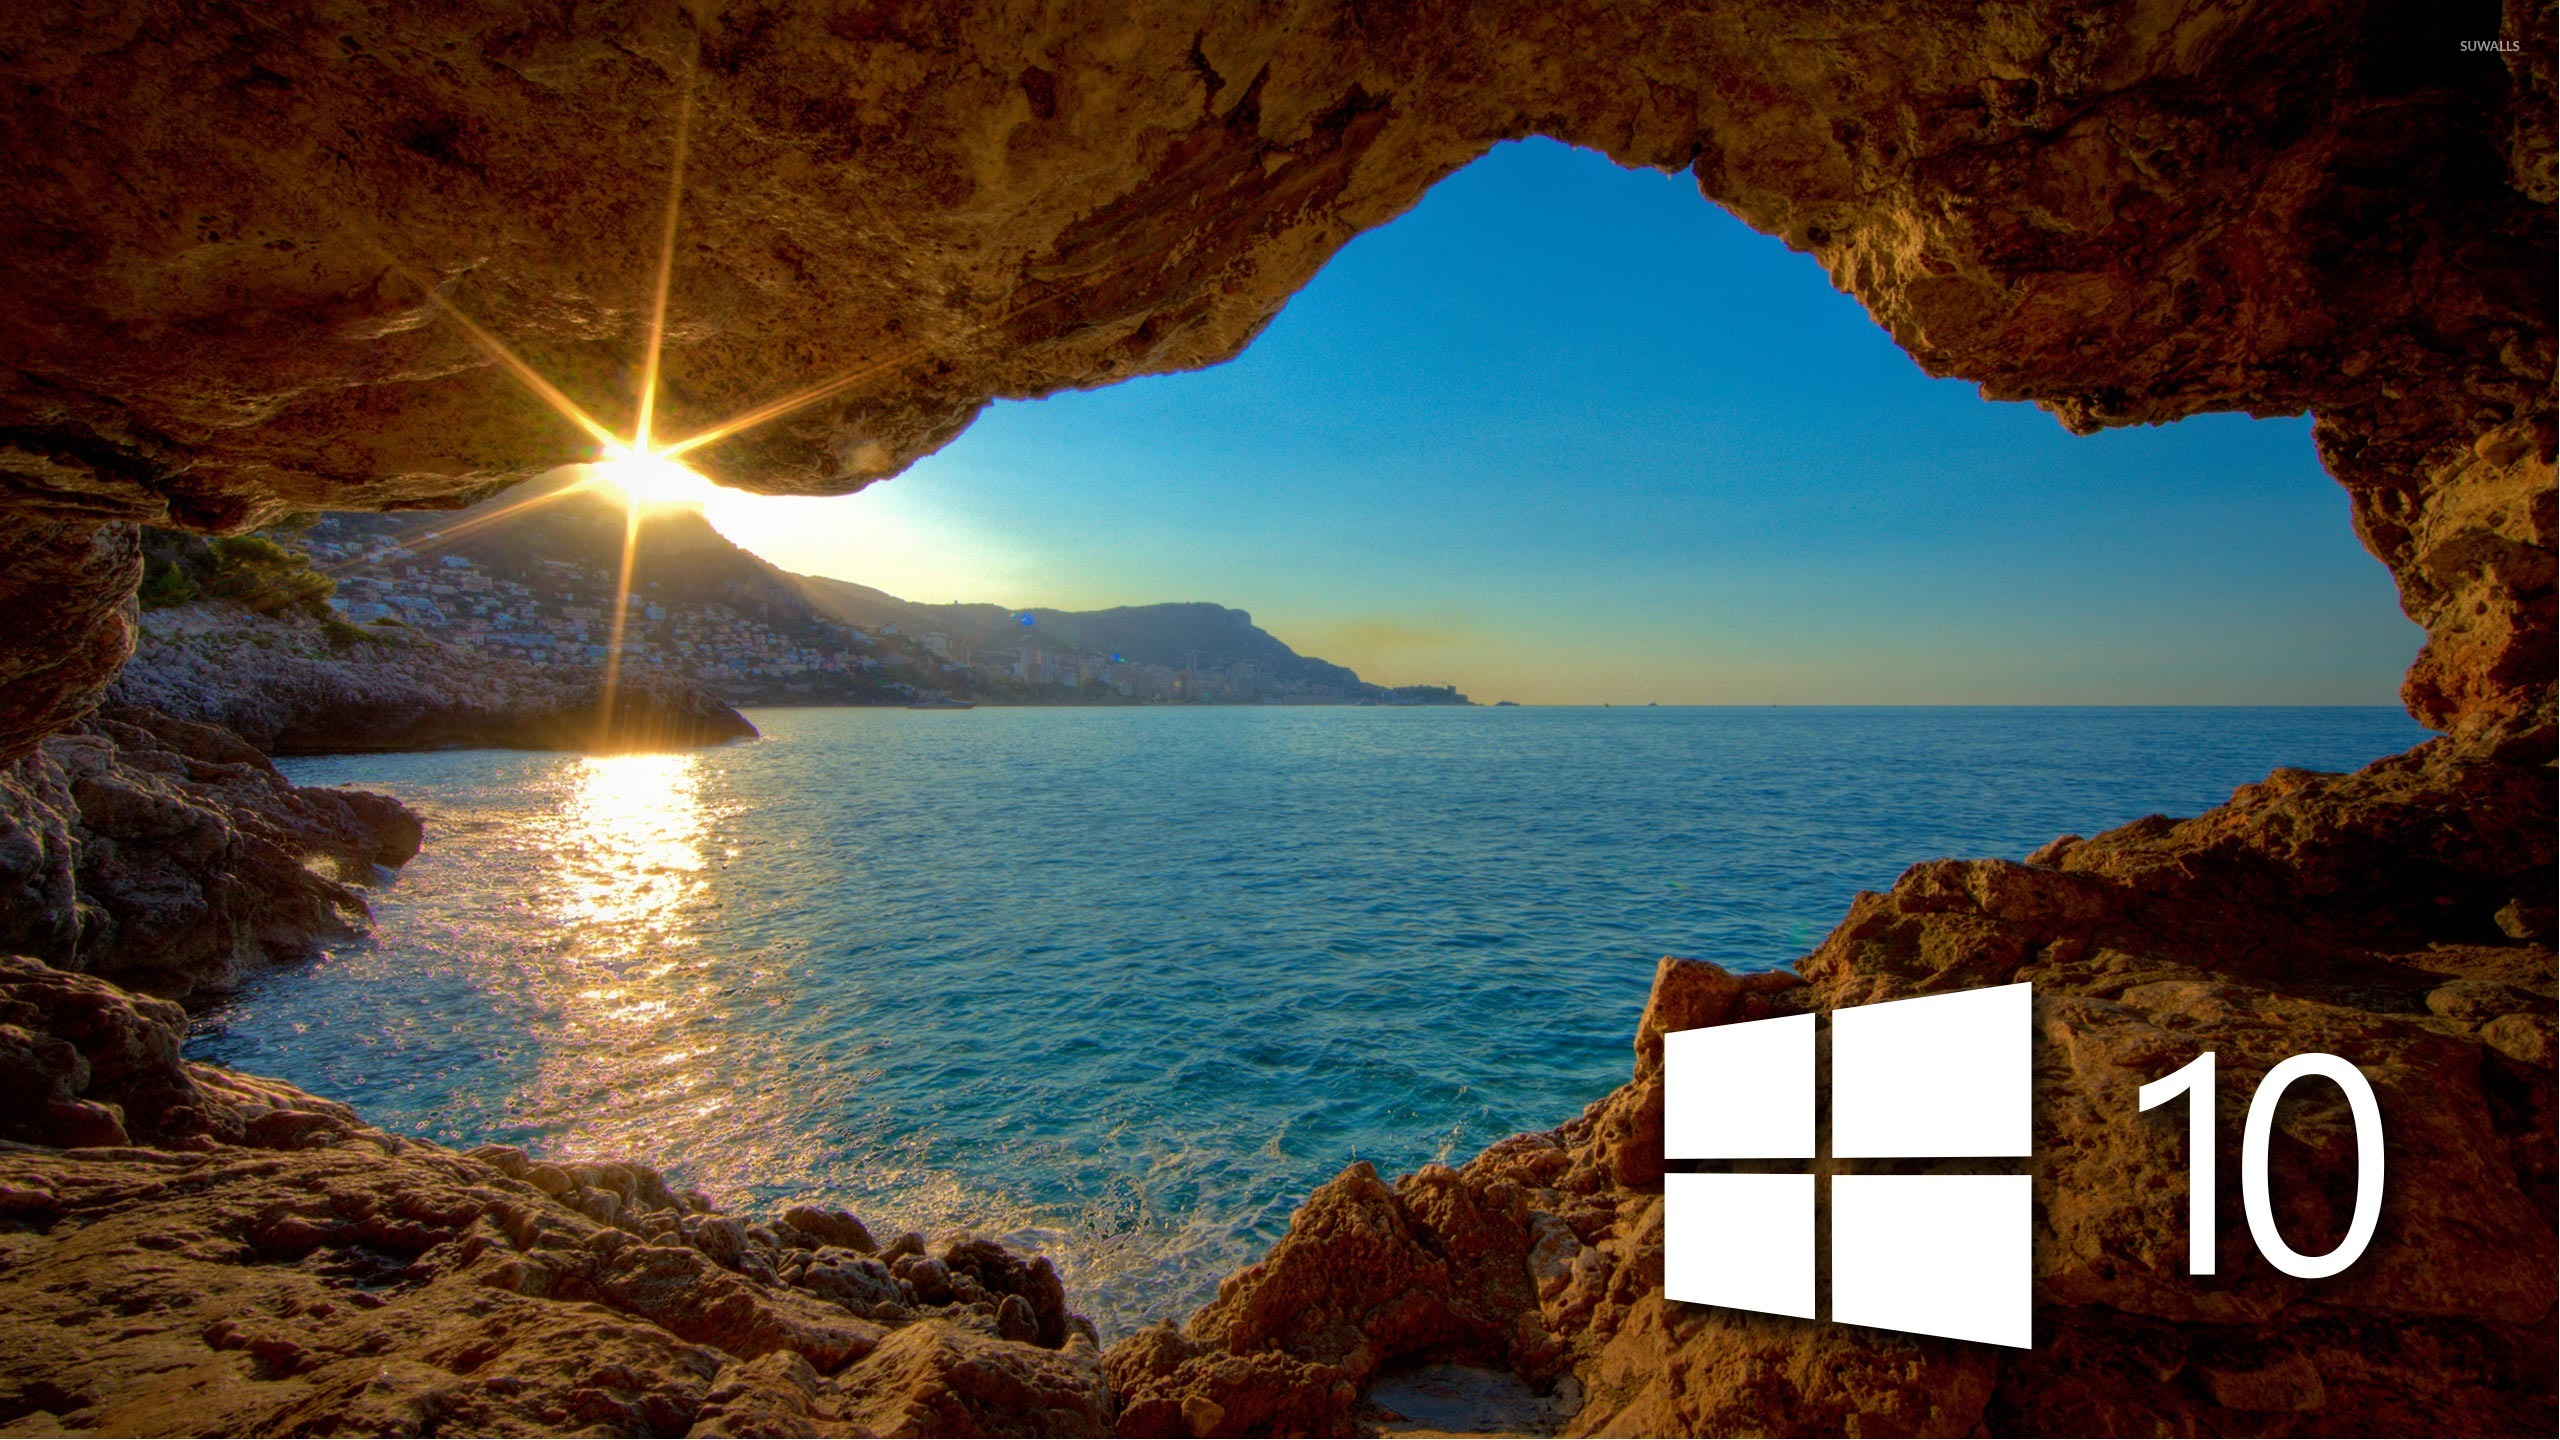 windows 10 over the cave simple logo wallpaper - computer wallpapers